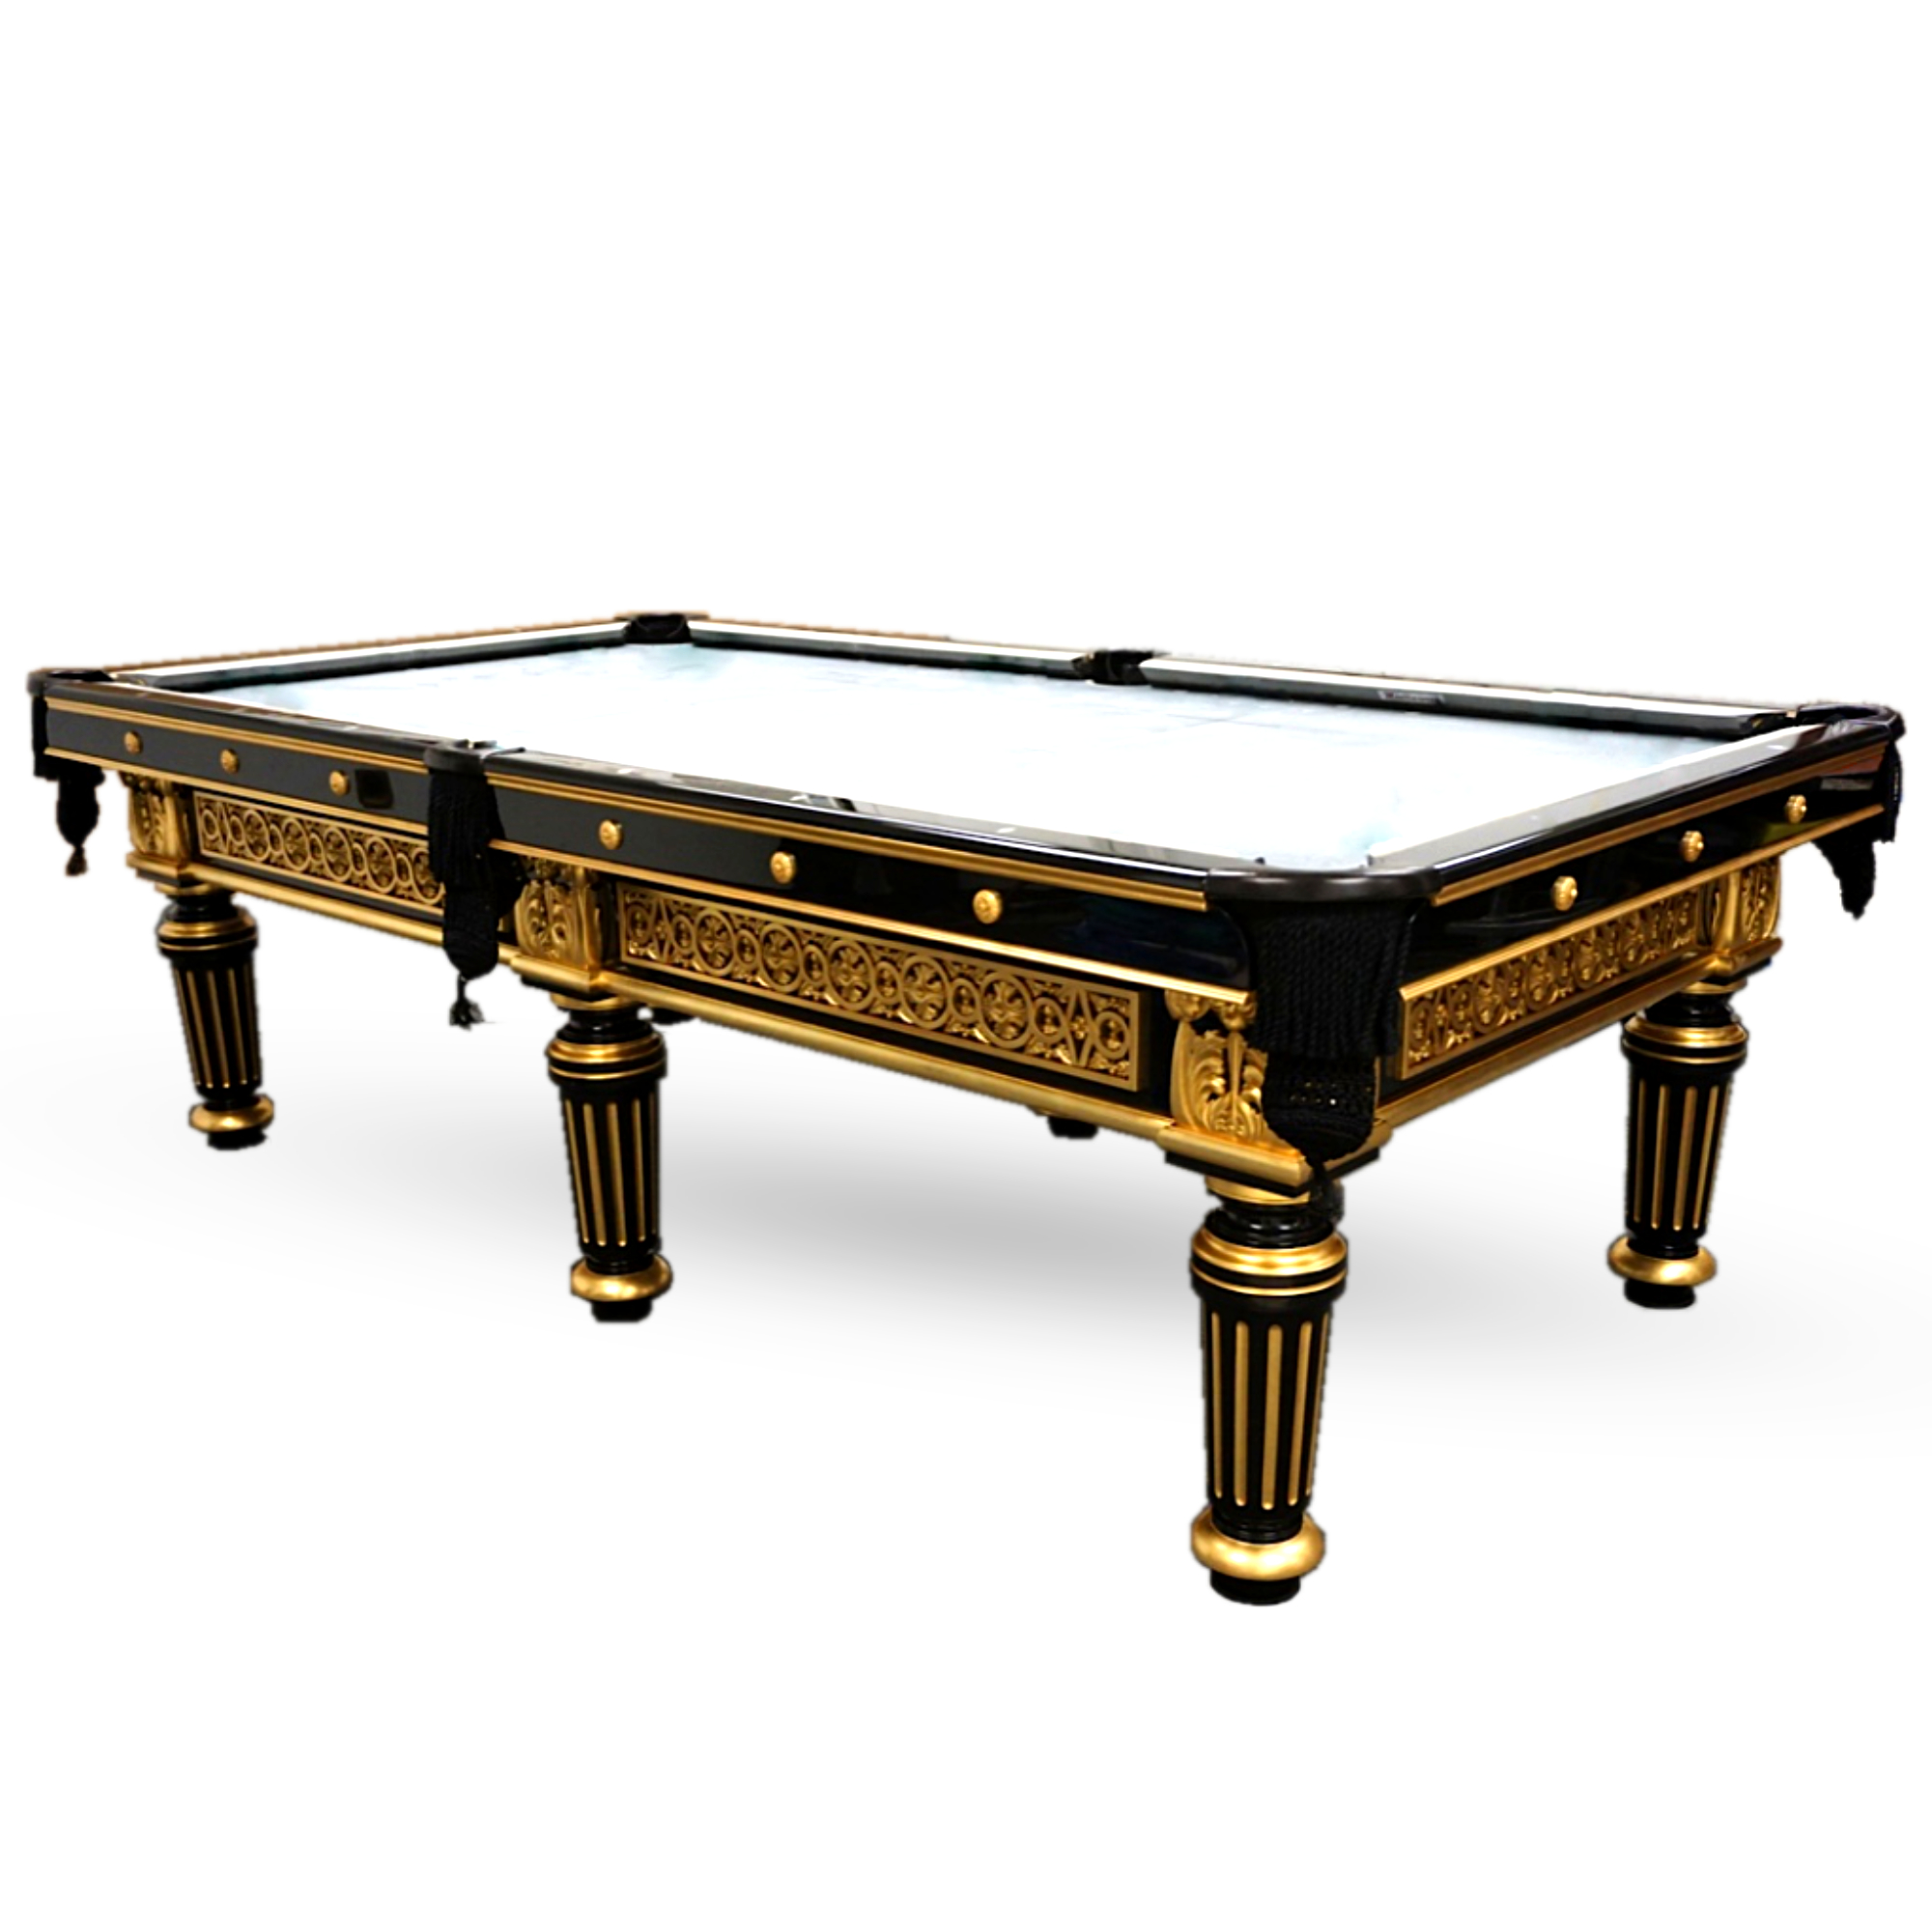 Gilding-pool-table.jpg